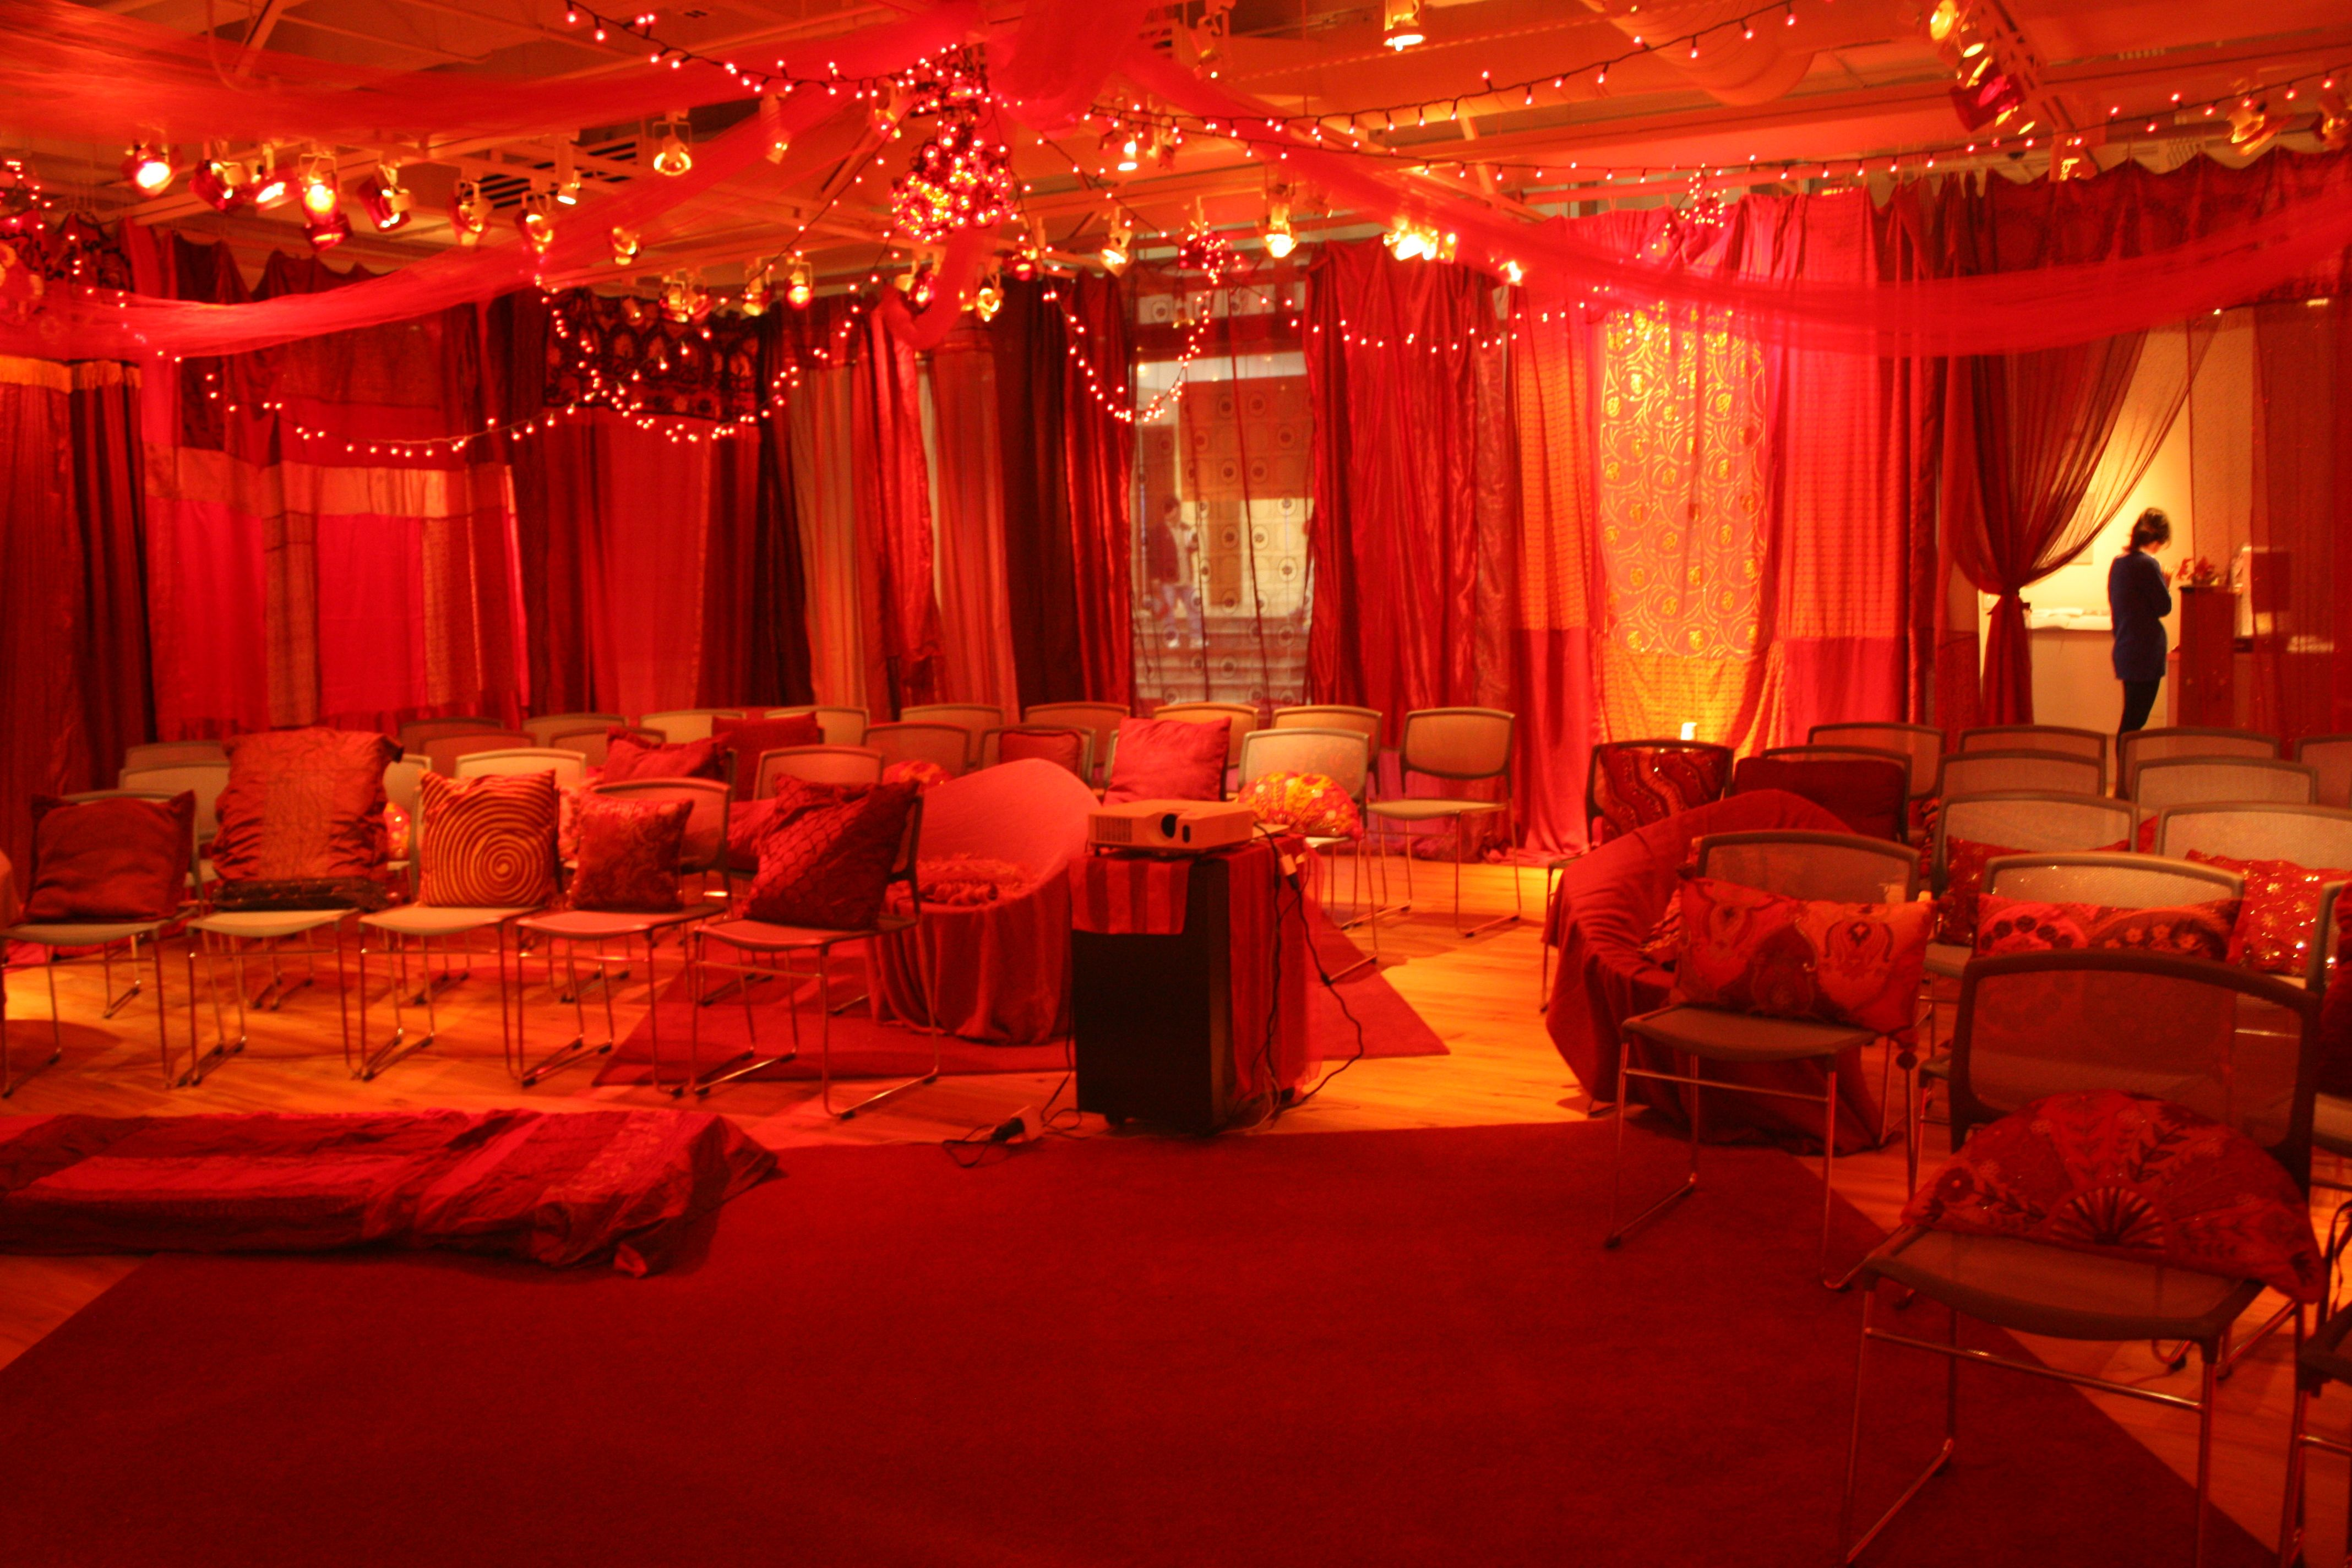 How i made my red tent with images red rooms red tent